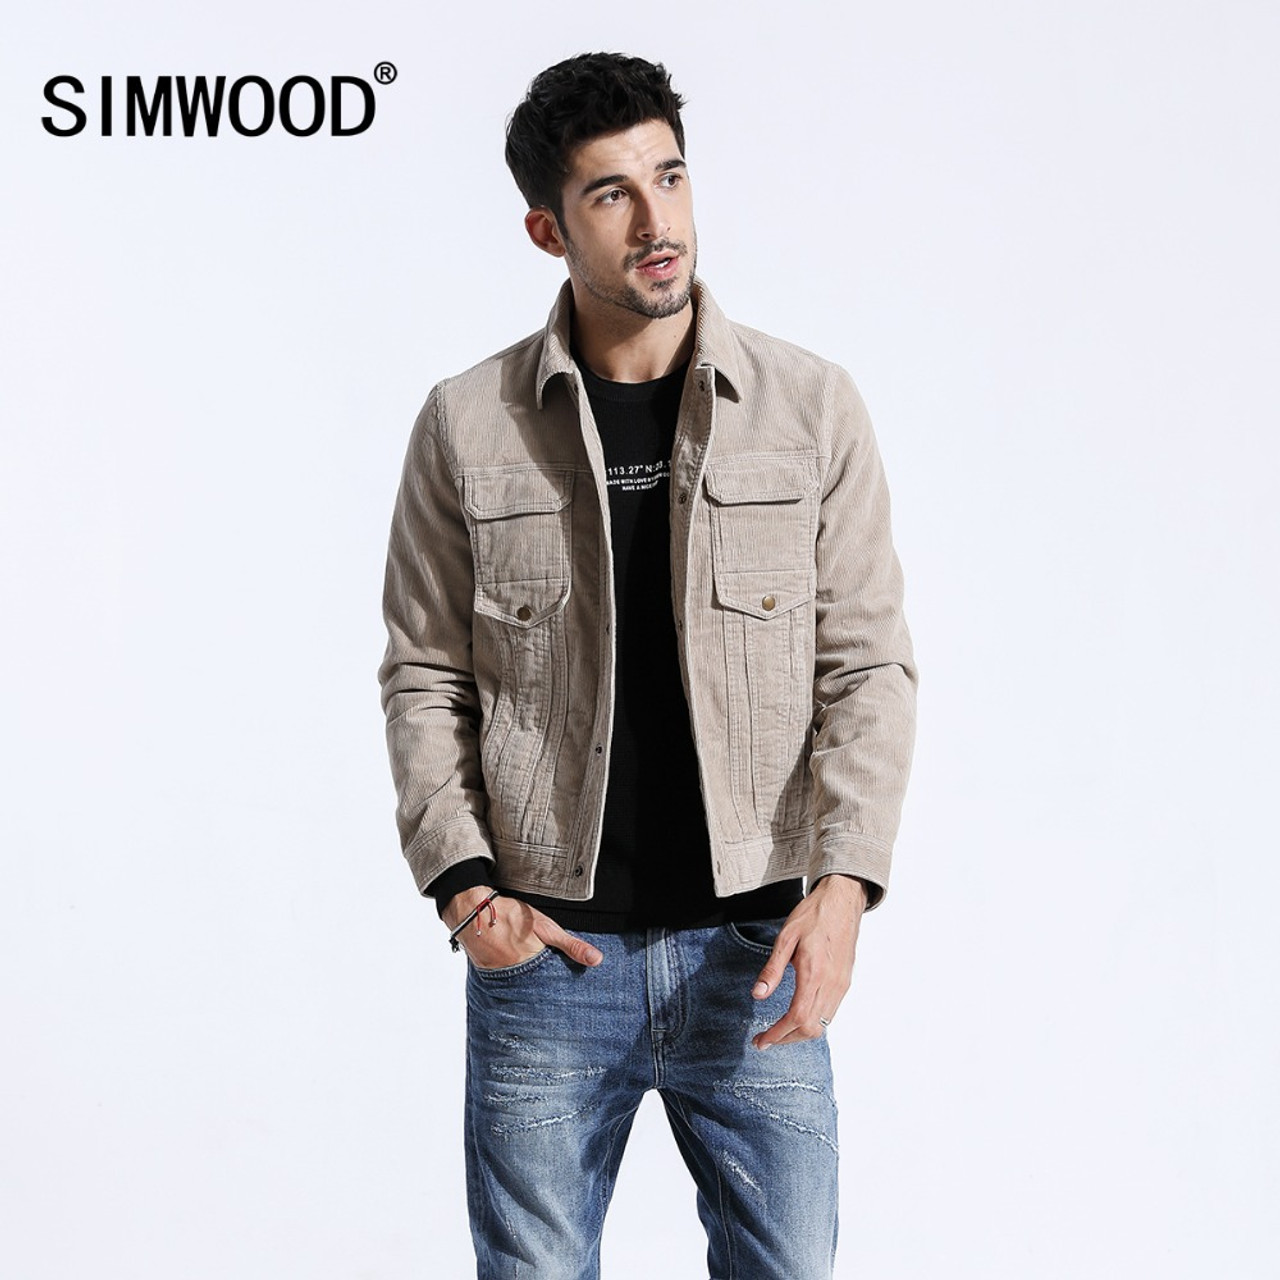 8feeda9056 SIMWOOD 2018 Autumn Jacket Men Casual Fit Corduroy Coats For Men Fashion  Long Sleeve Basic Single Breasted Brand Outwear 180300